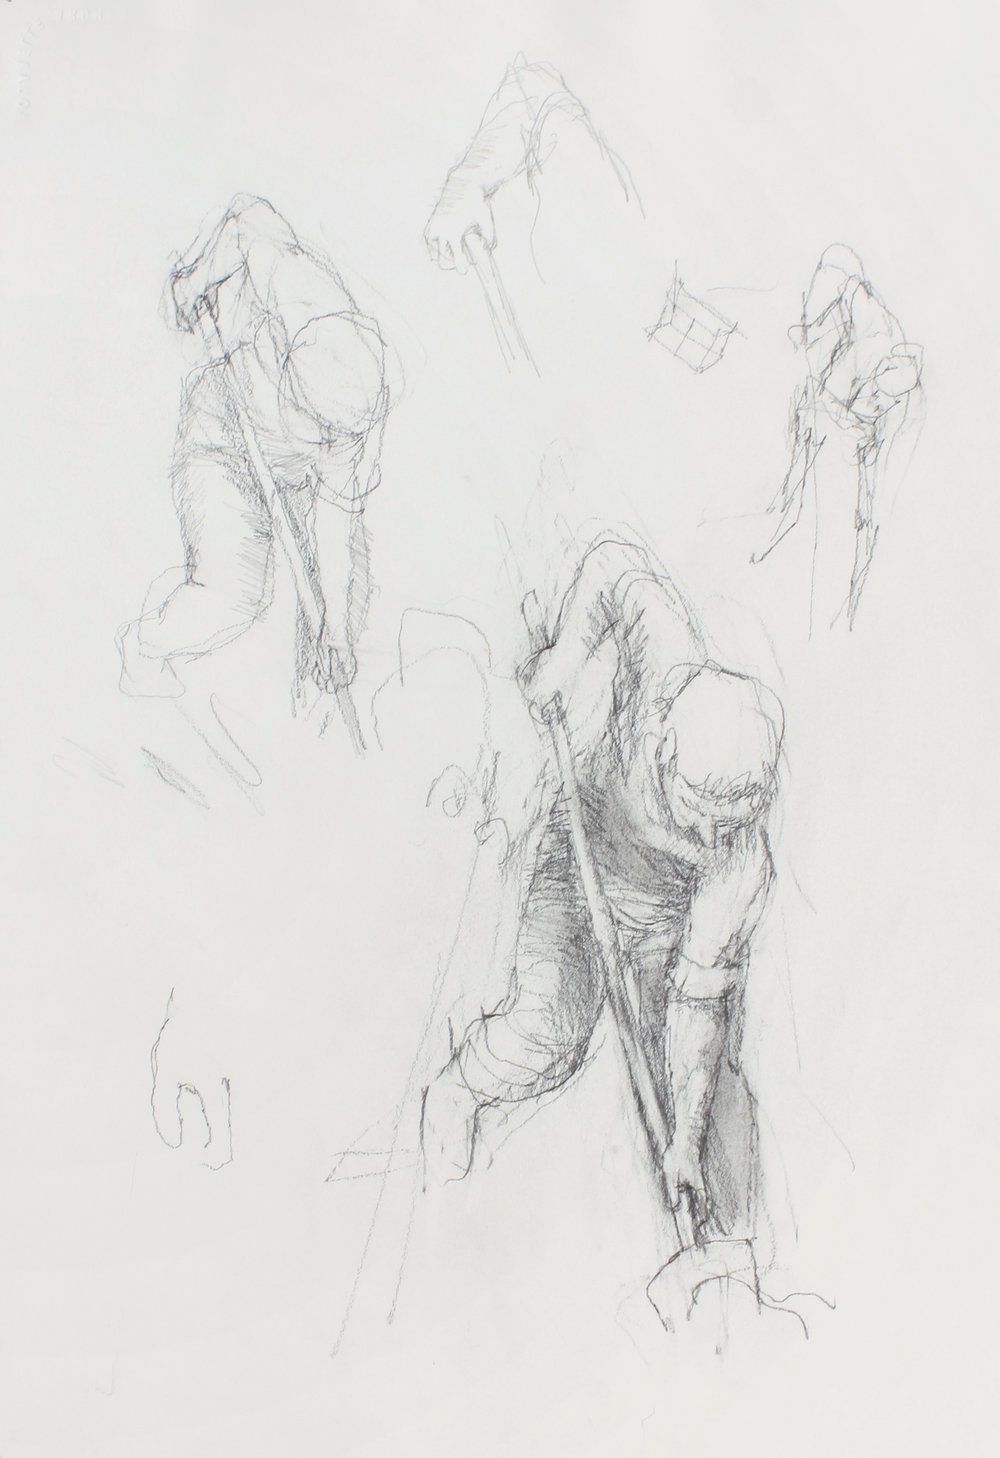 1986_Study_of_Four_Diggers_with_Shovel_pencil_on_paper_15x11in_WPF610.jpg